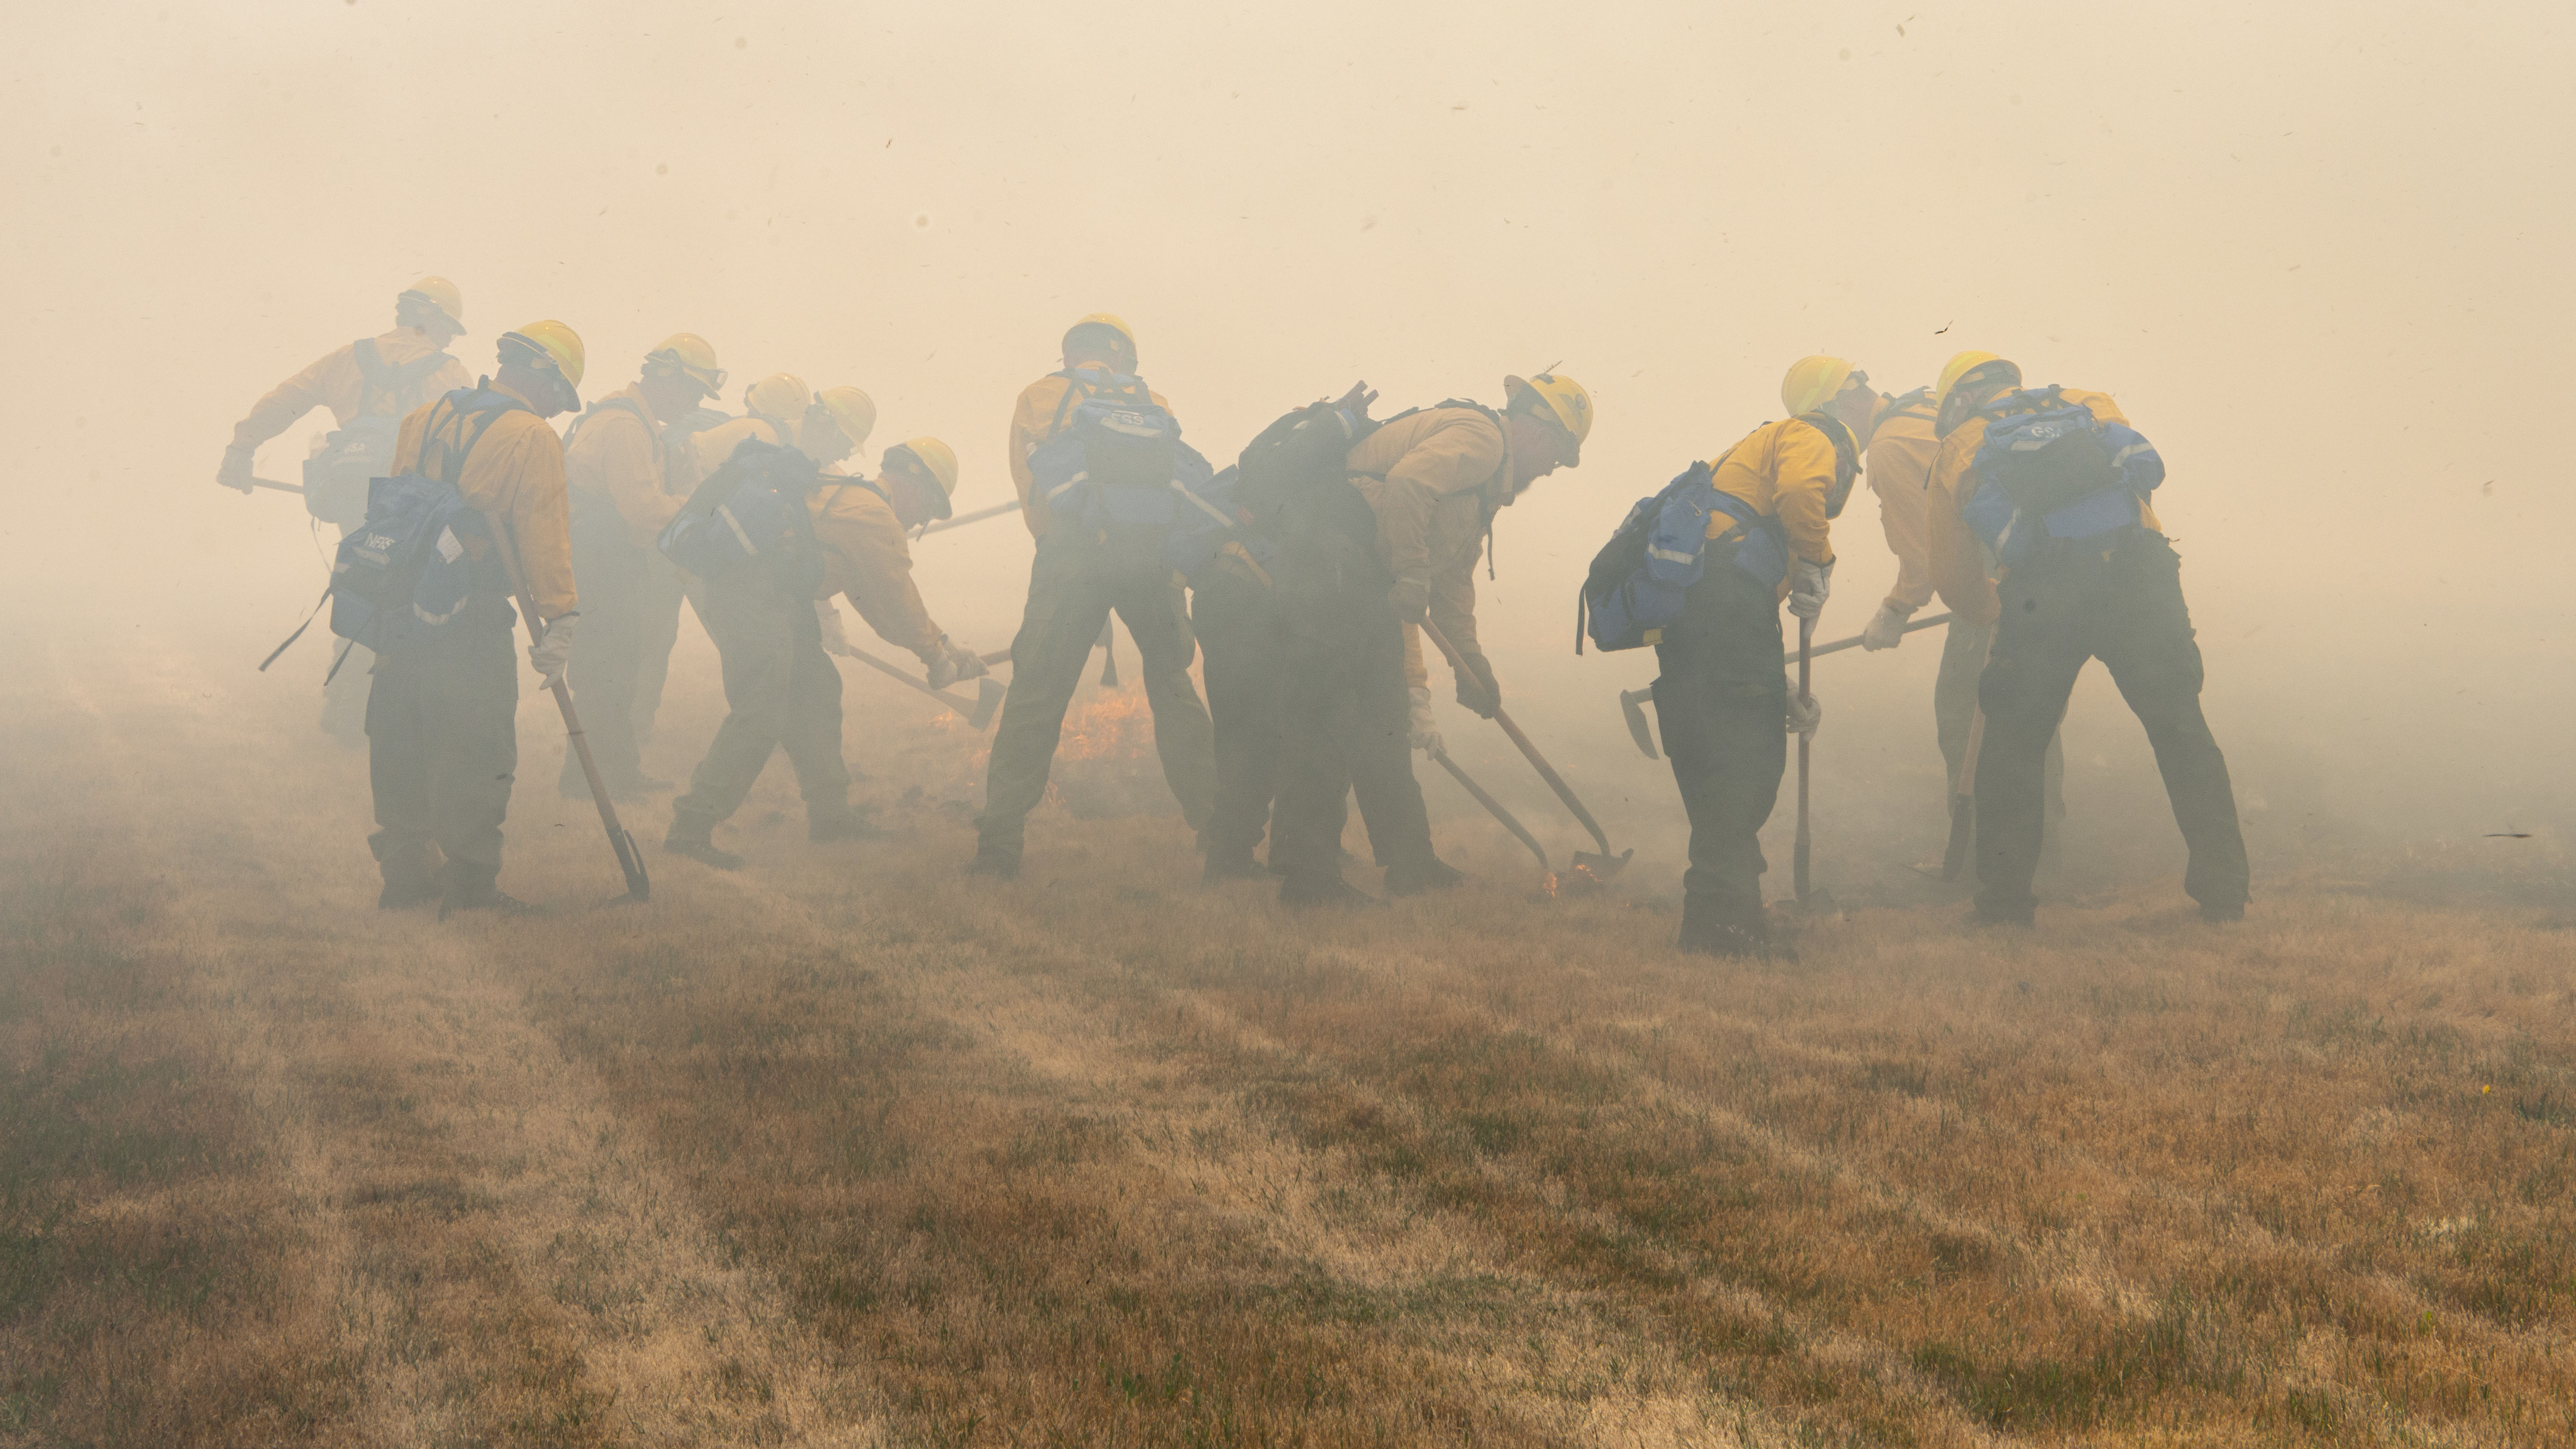 National Guard Battles Blazes Across the Country